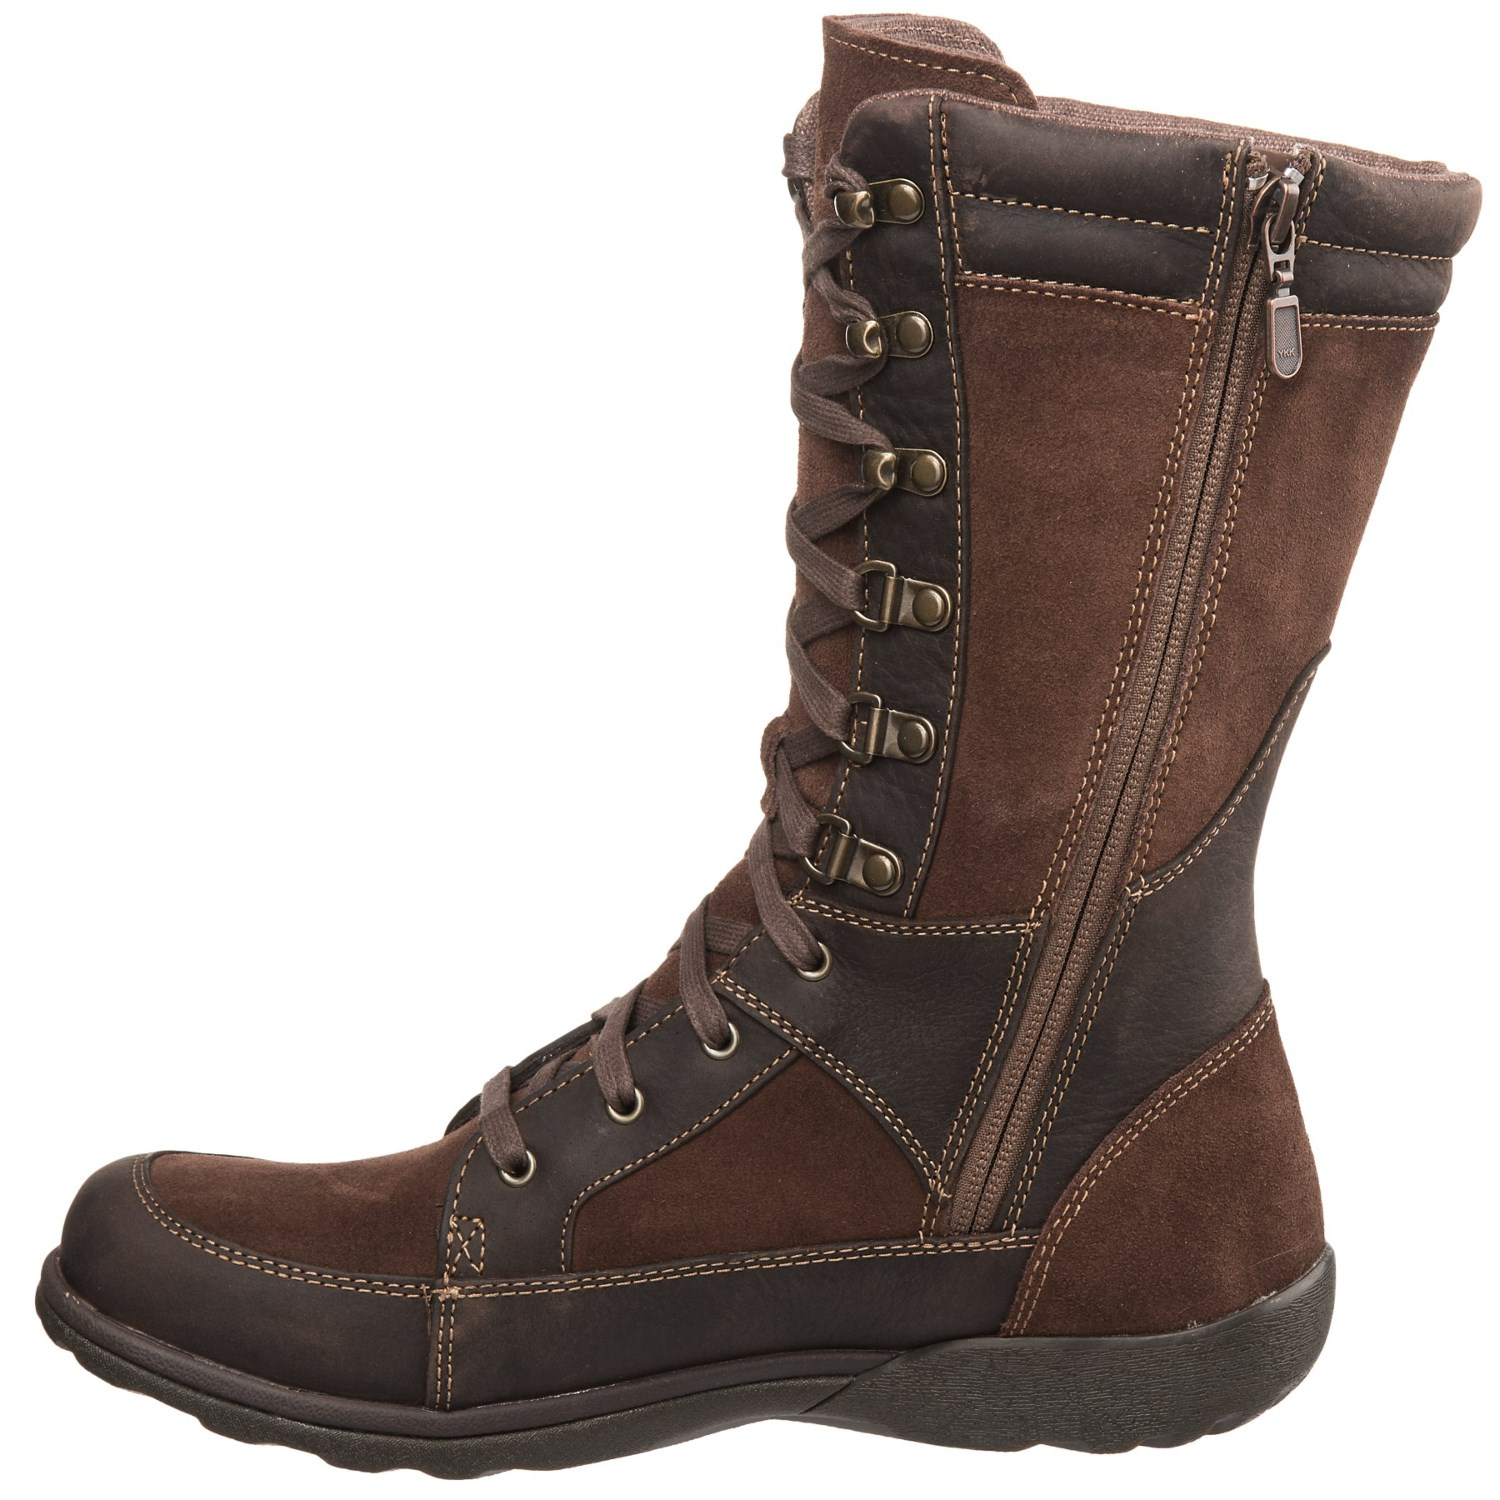 d8ea8f90d08 Chaco Lodge Boots - Waterproof, Leather (For Women)